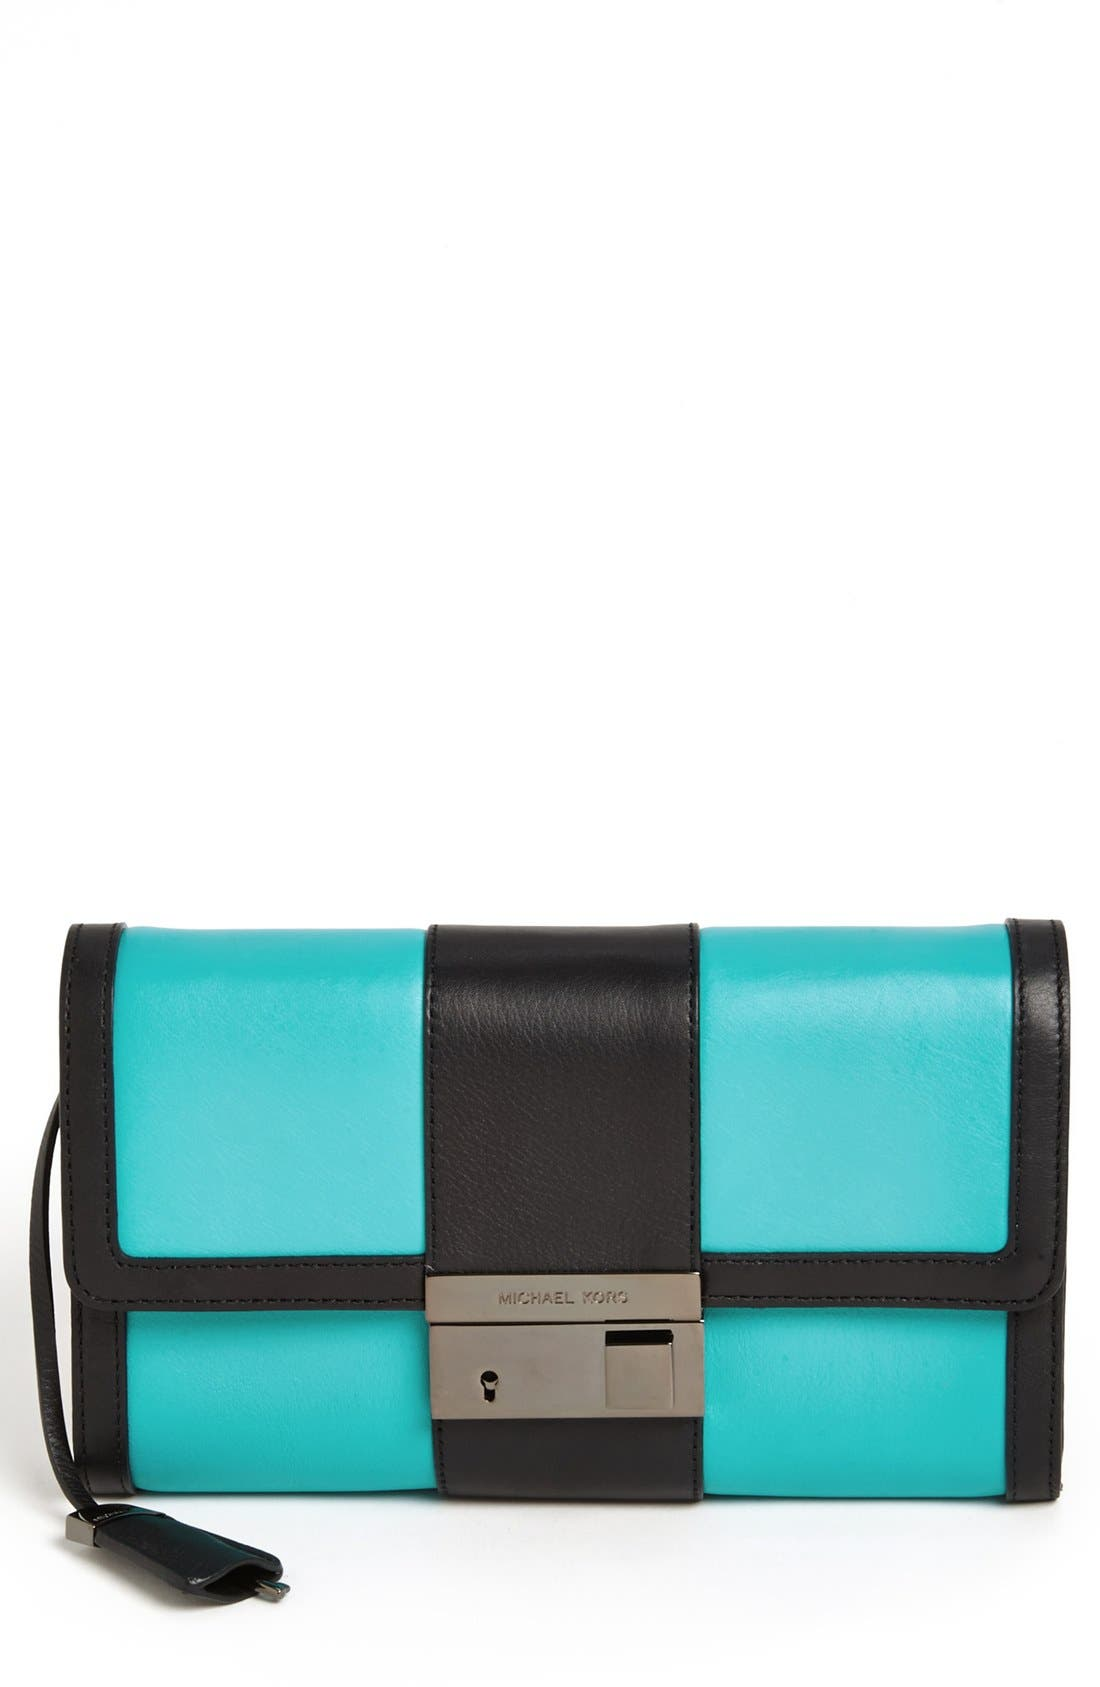 Alternate Image 1 Selected - Michael Kors 'Gia' Colorblock Leather Clutch